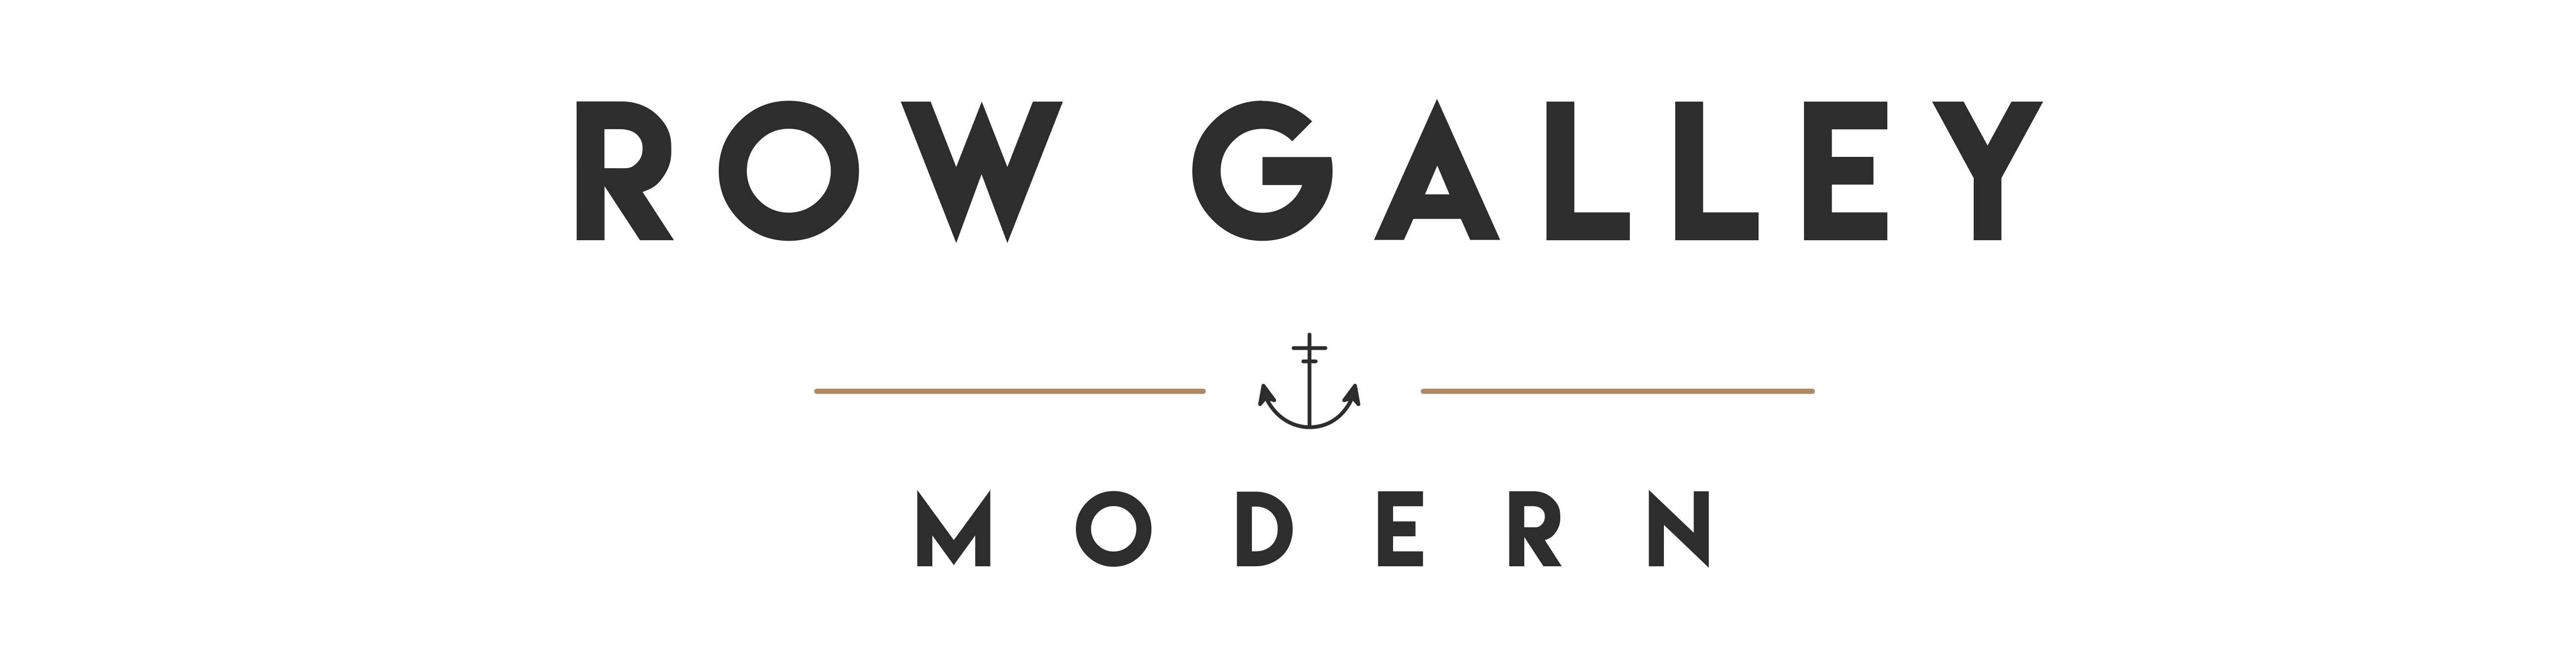 Row Galley Modern